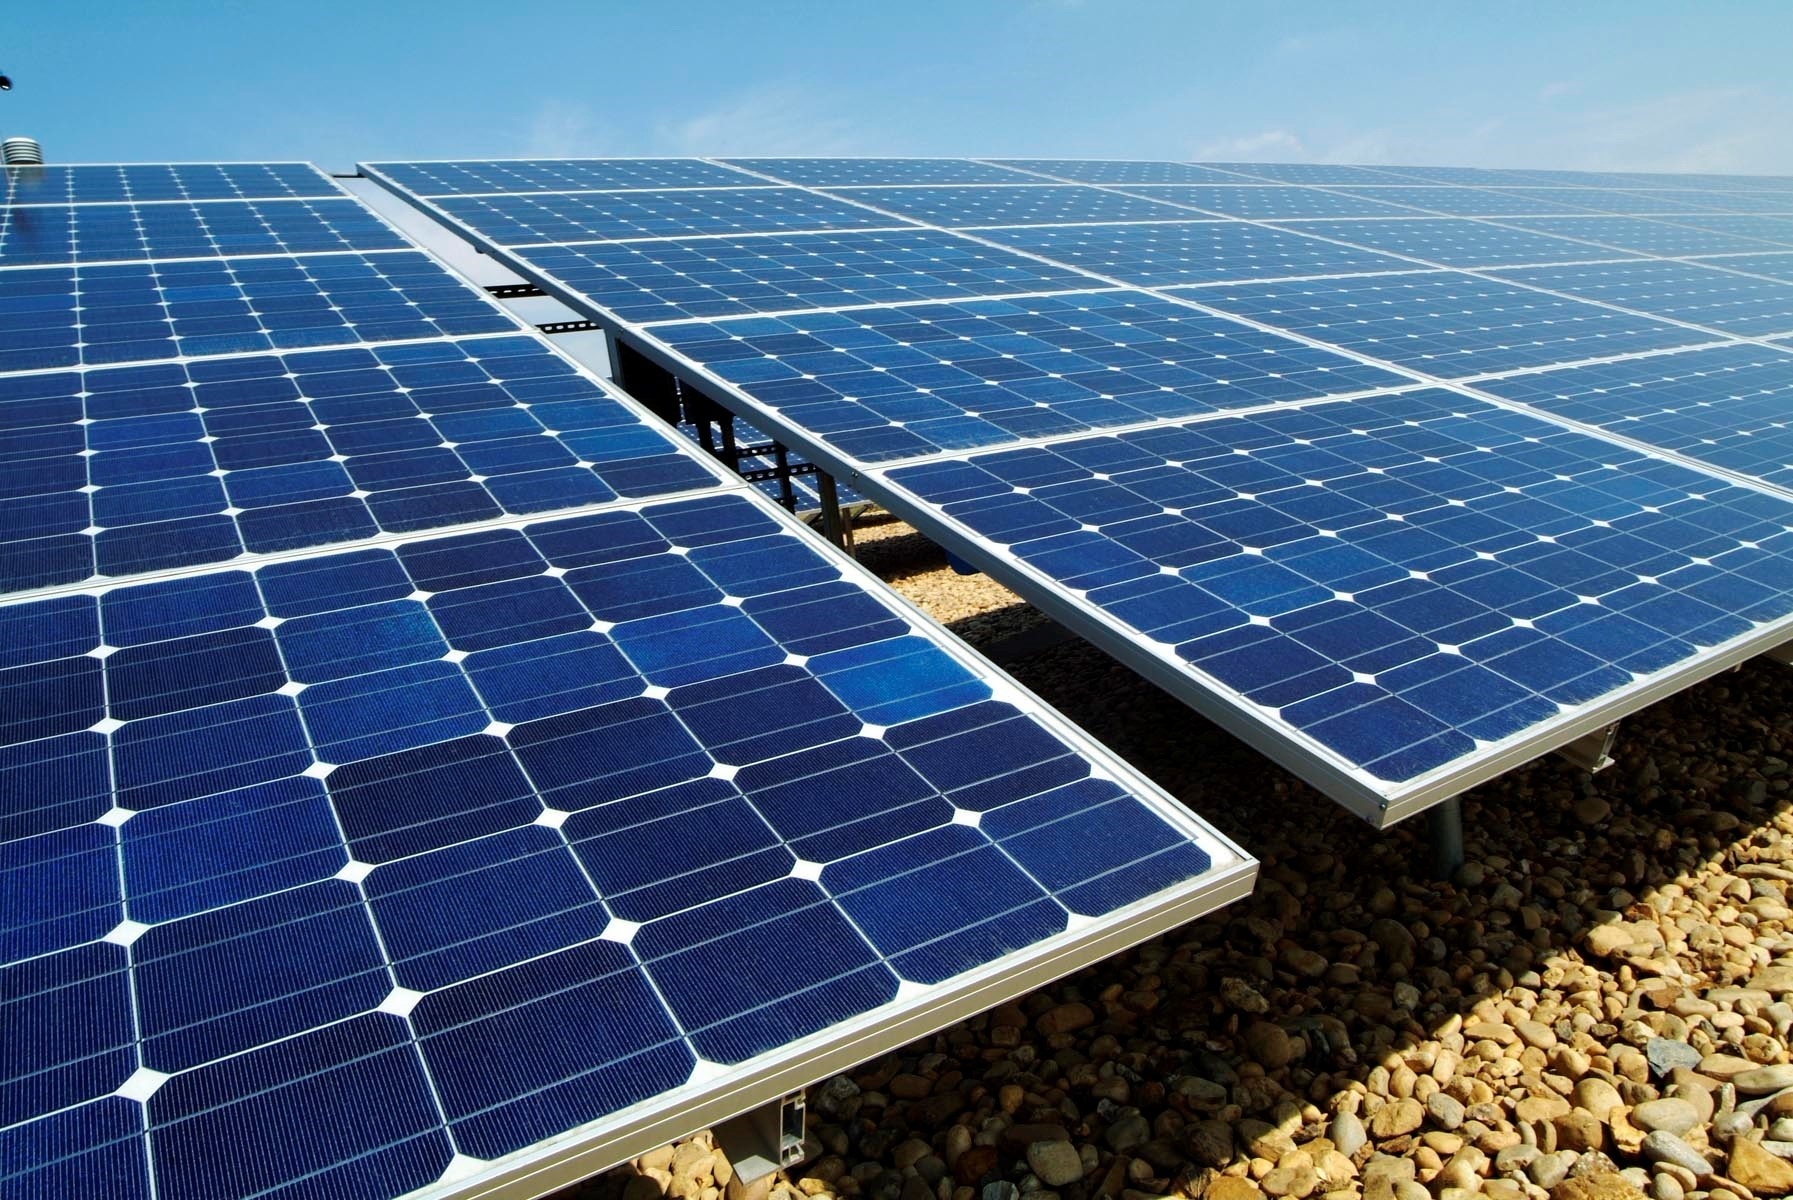 A large solar farm in Poulshot has been given planning permission